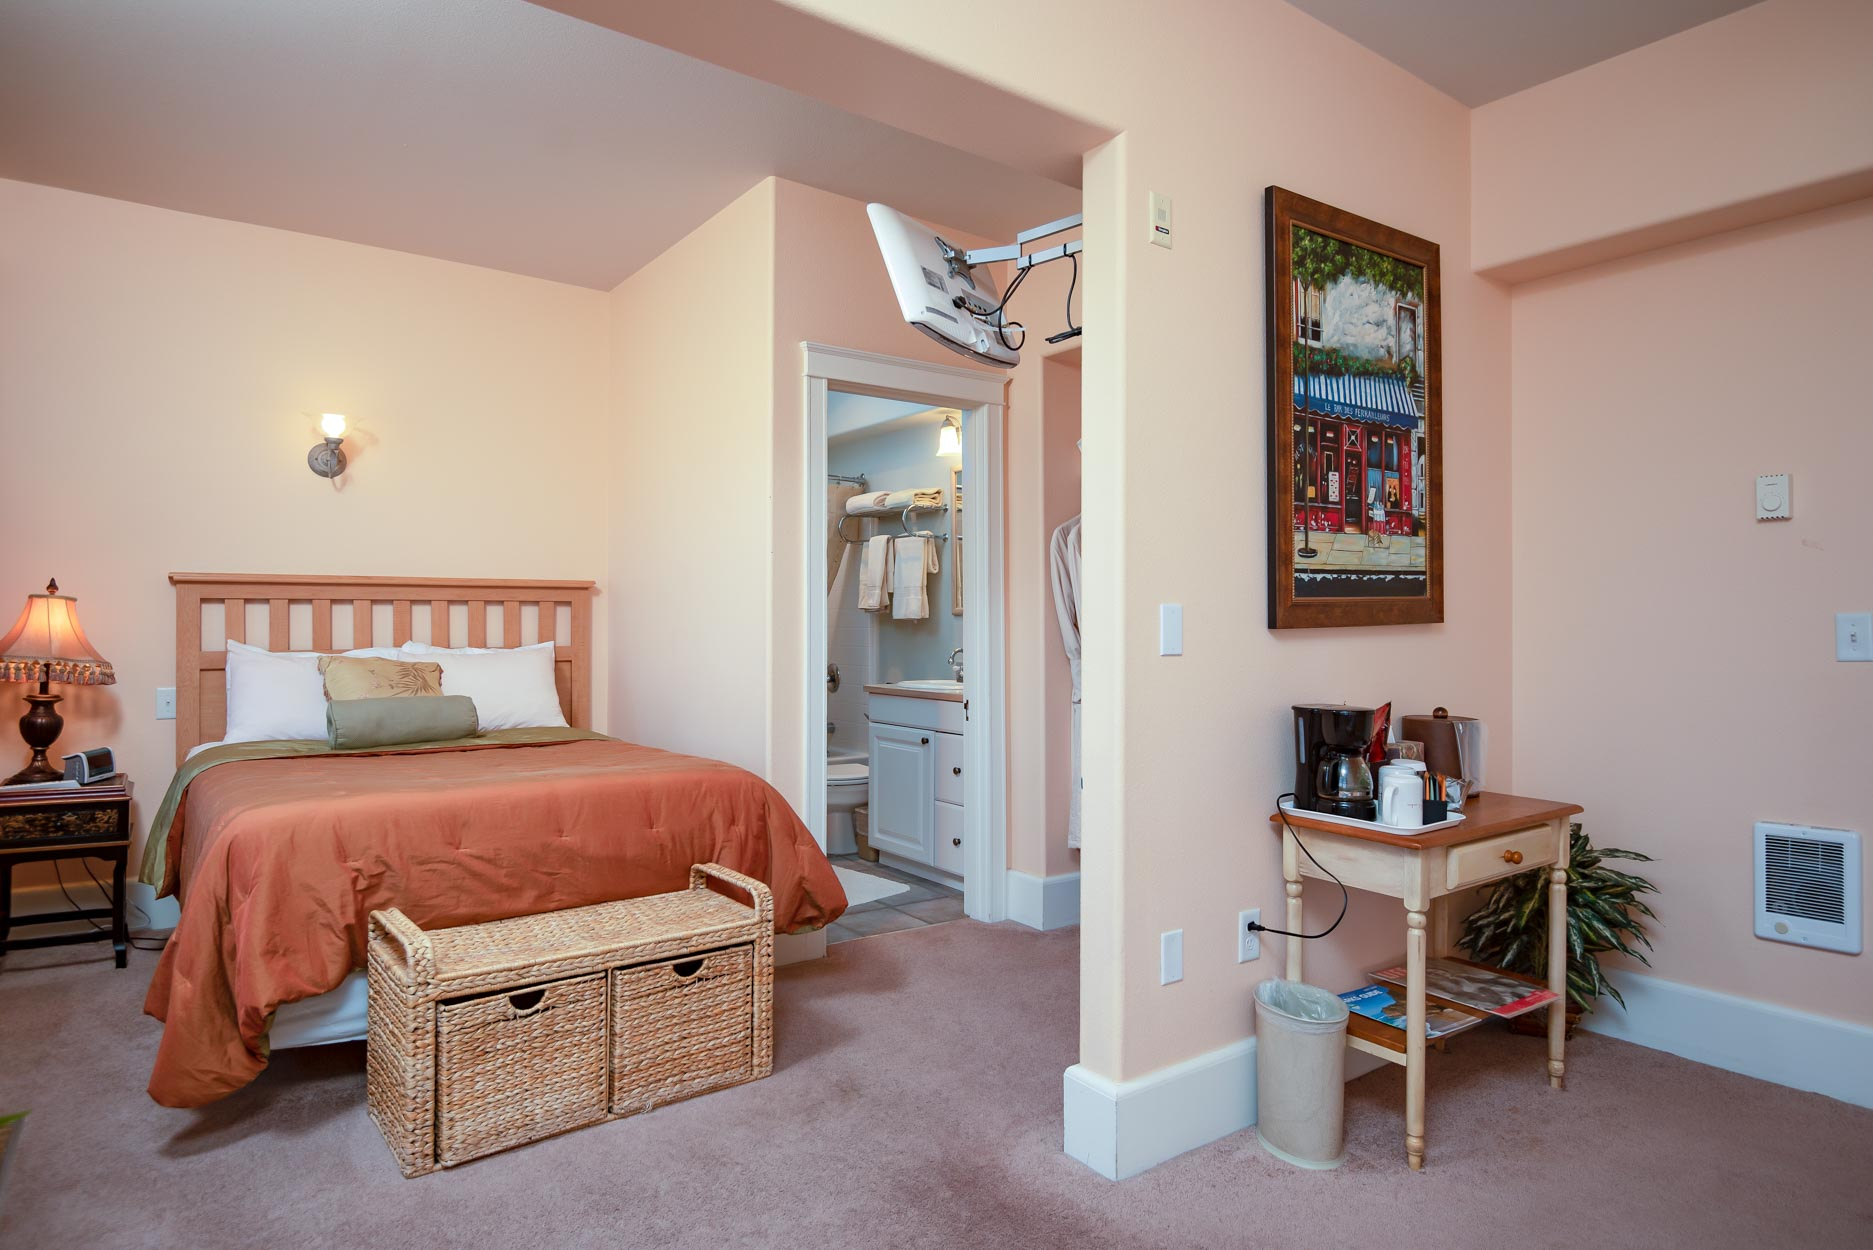 Premium Room - At least 220 square feet. Bedroom with queen bed and sitting area. Bathroom with shower/tub. Sleeps 2 guests and up to 1 child. Complimentary wifi and continental breakfast.